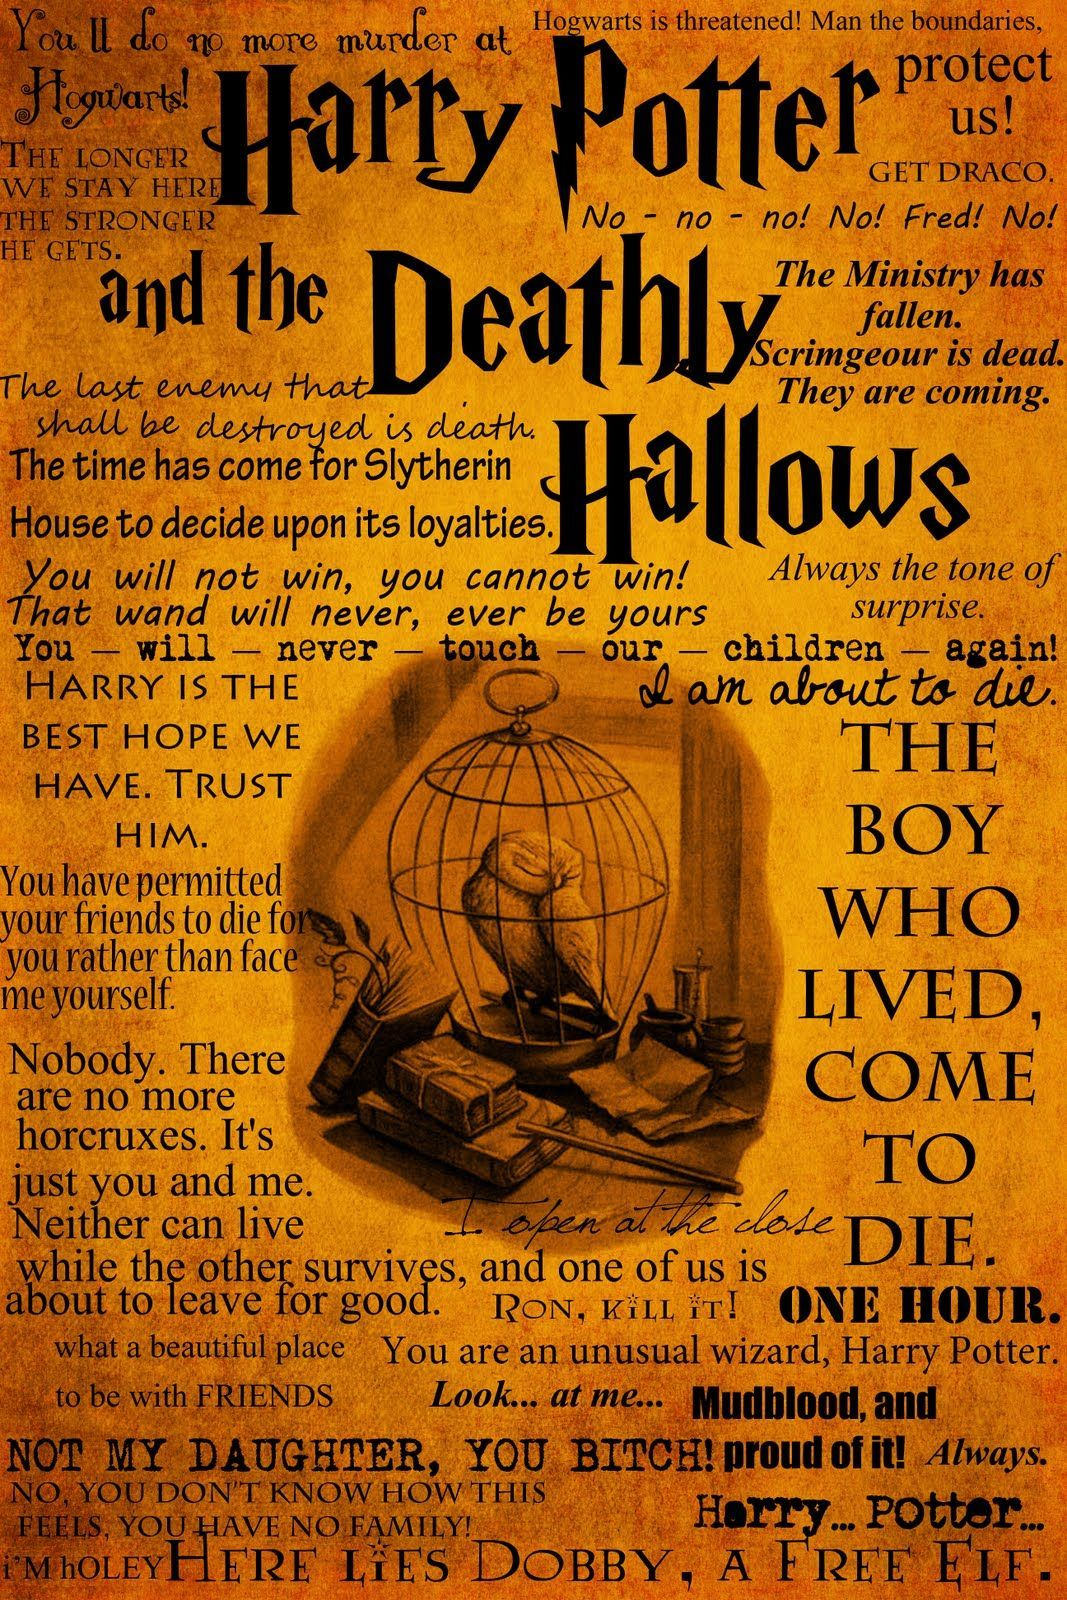 Harry Potter Book Quotes 09Be6Dd02Ef5Fc875Ac71307Ecb624E6 1067×1600 Pixels  Harry